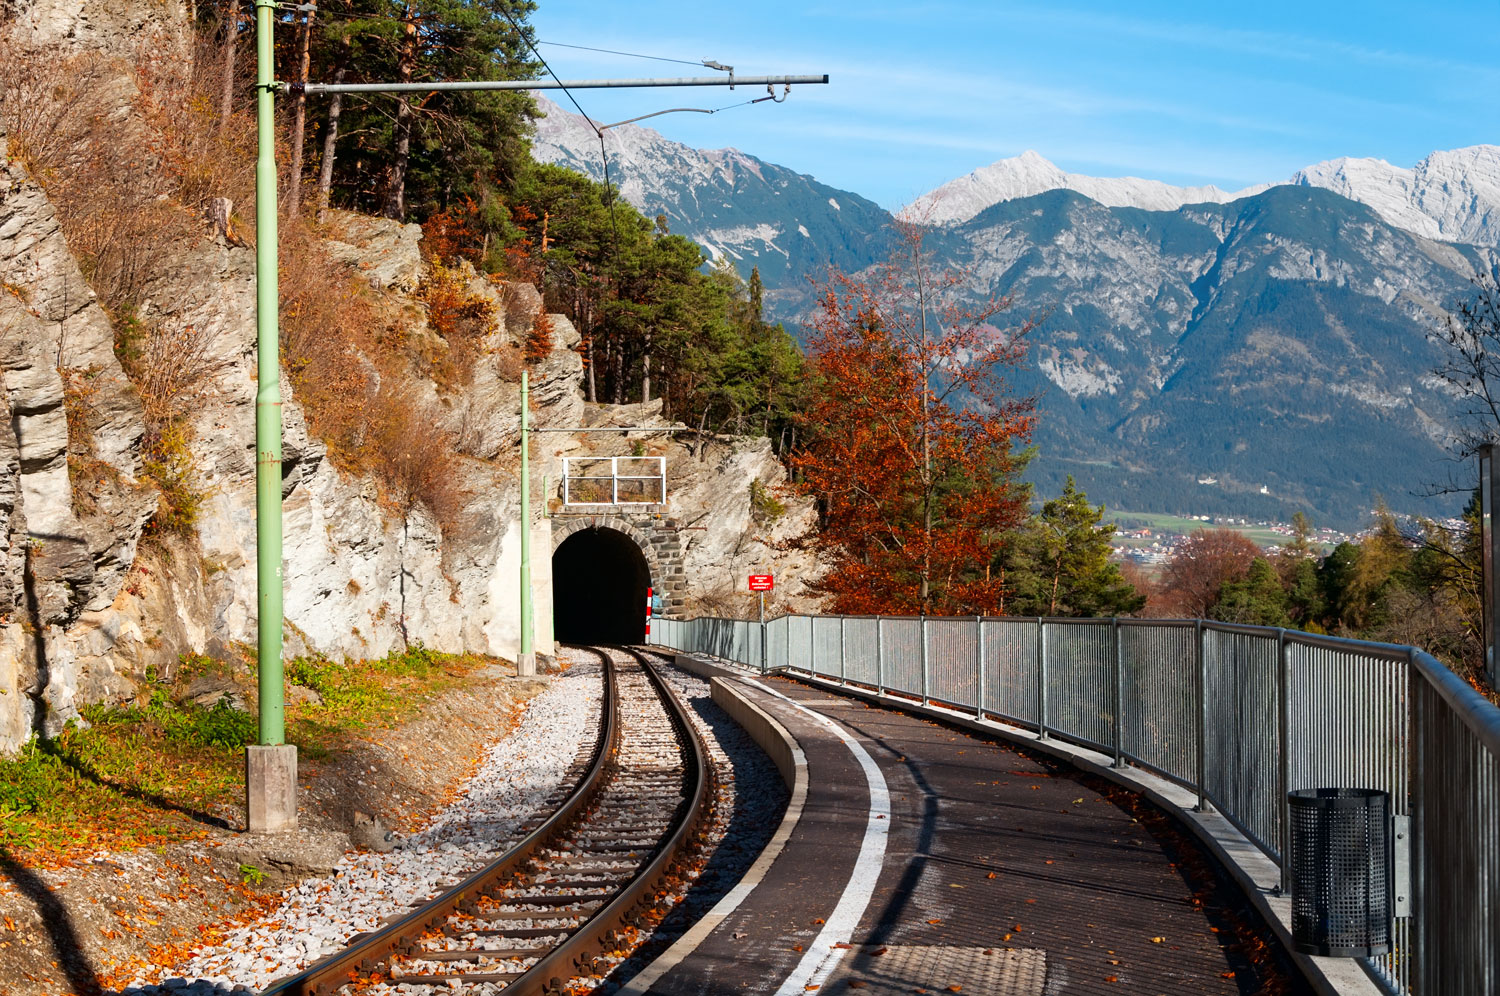 Railroad tunnel, Innsbruck, Austria